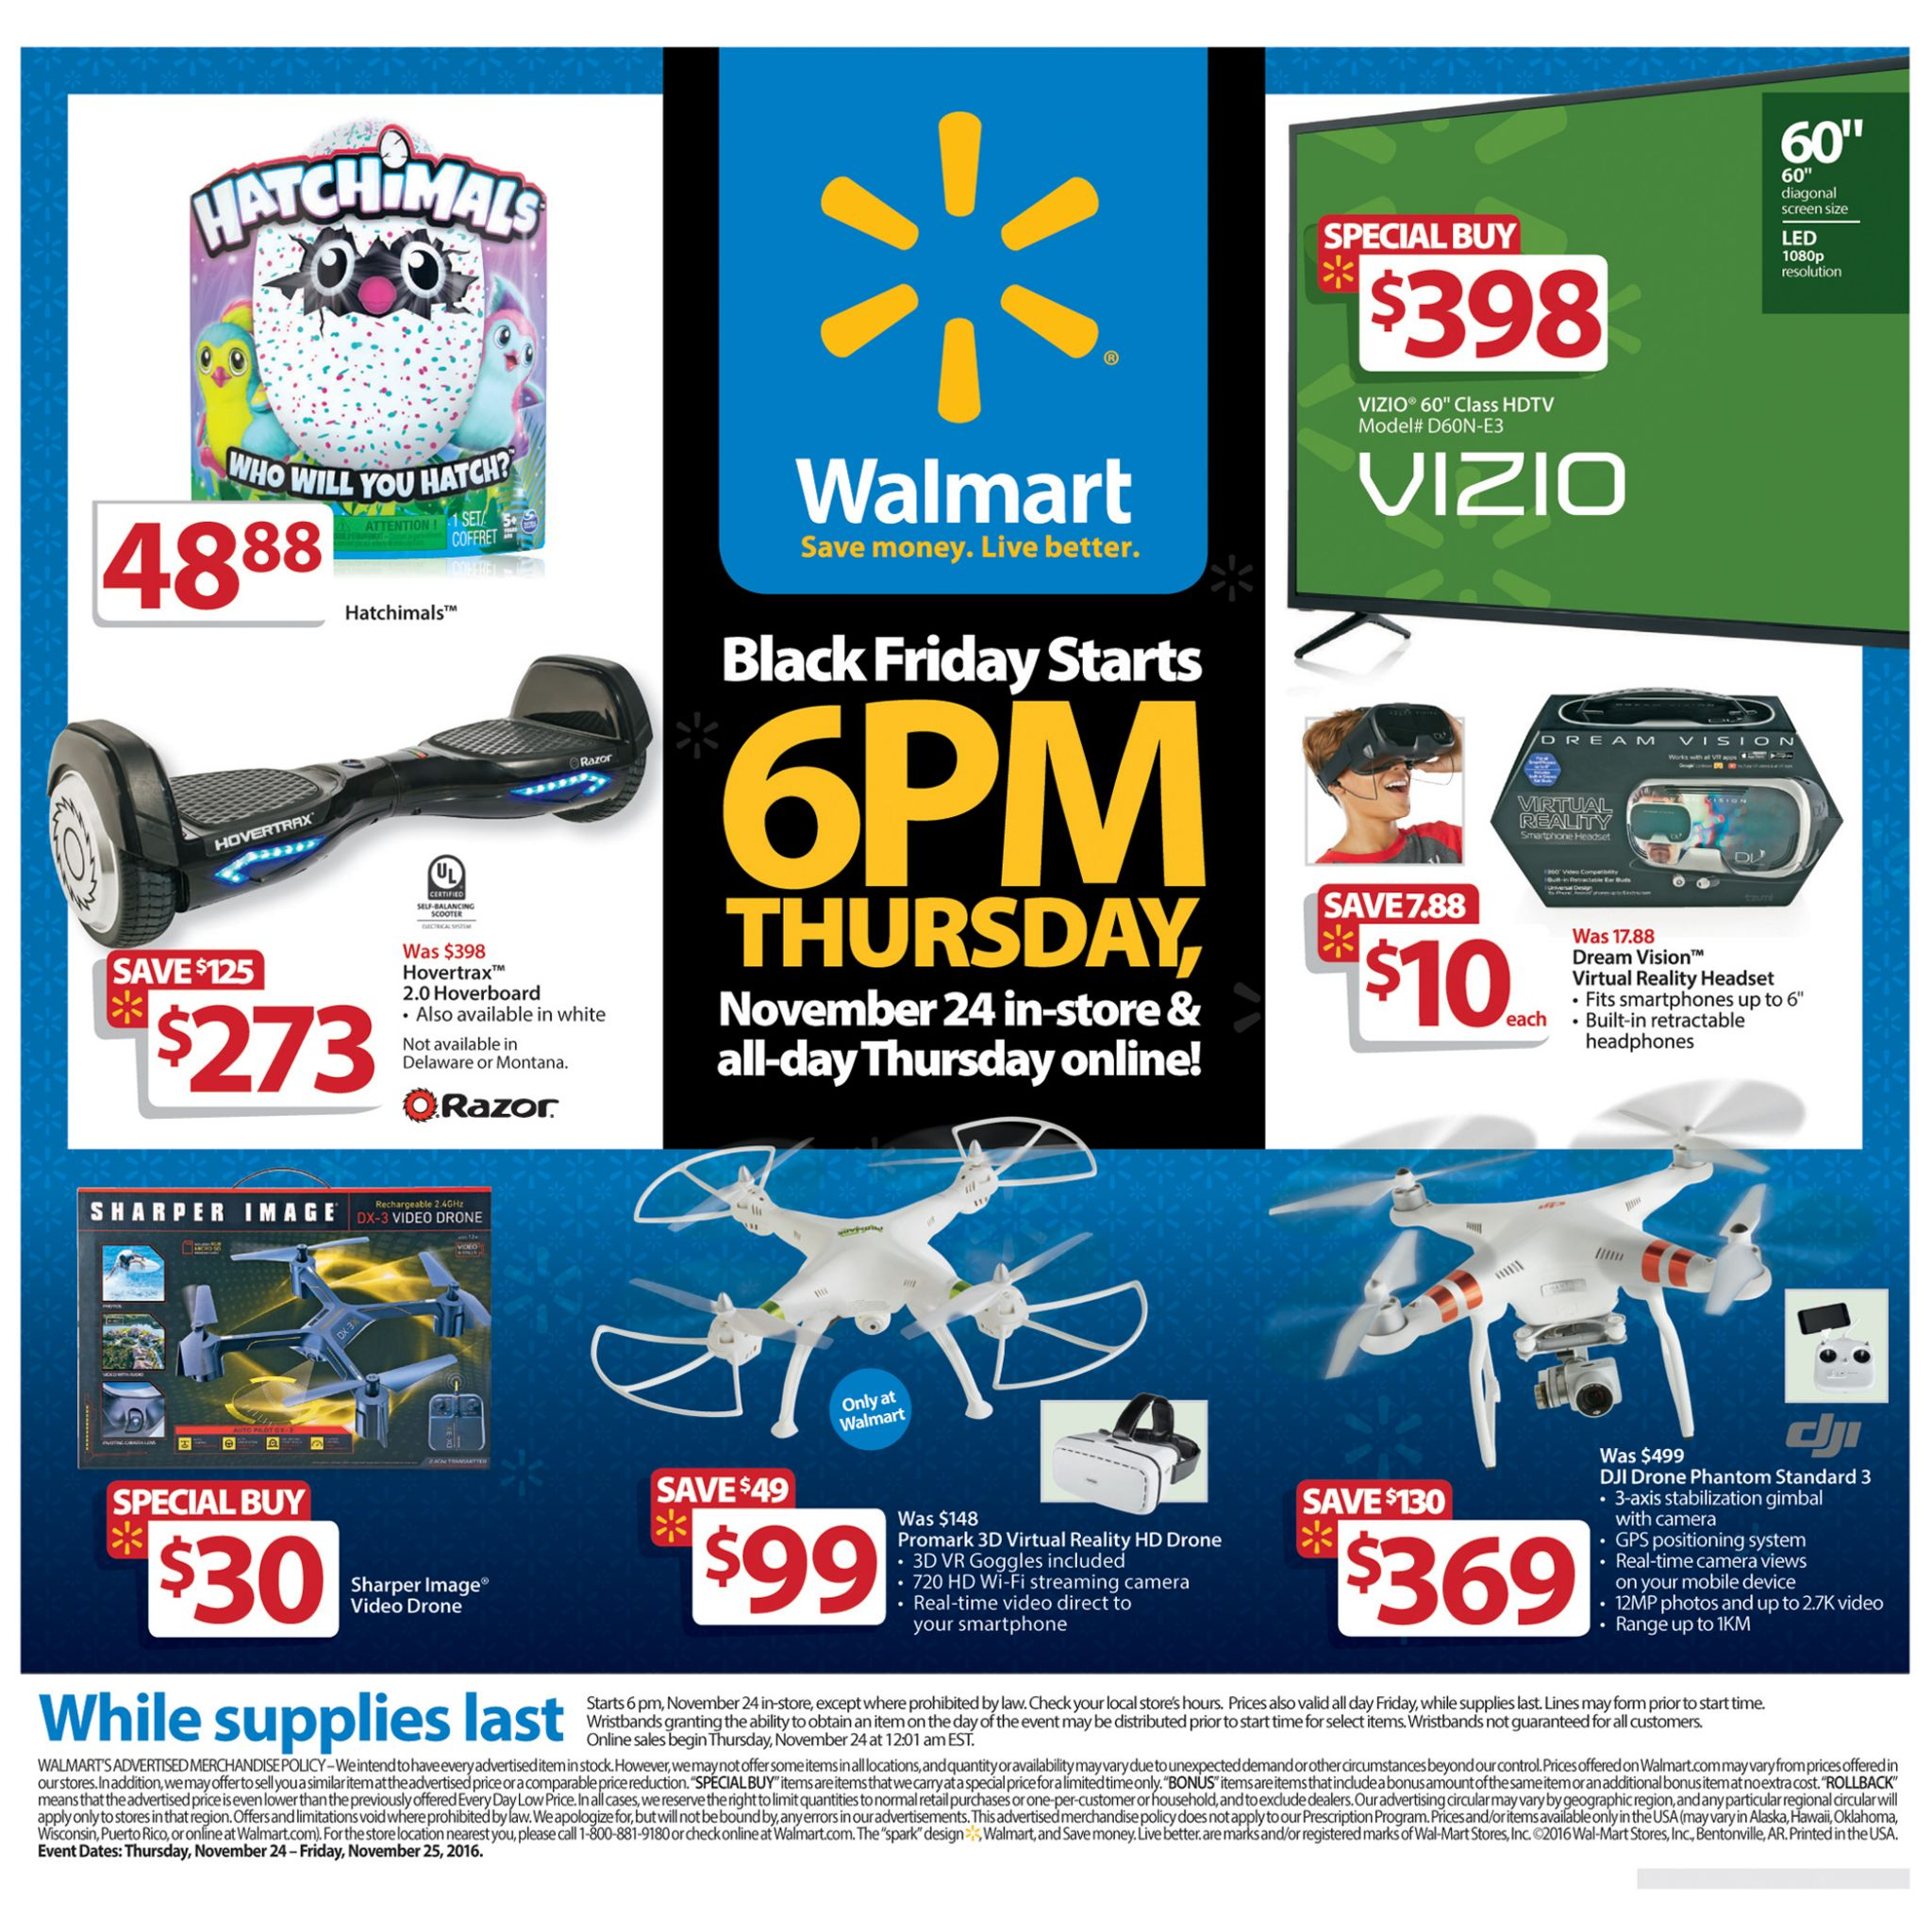 Walmart's Black Friday 2016 Doorbuster ad circular released